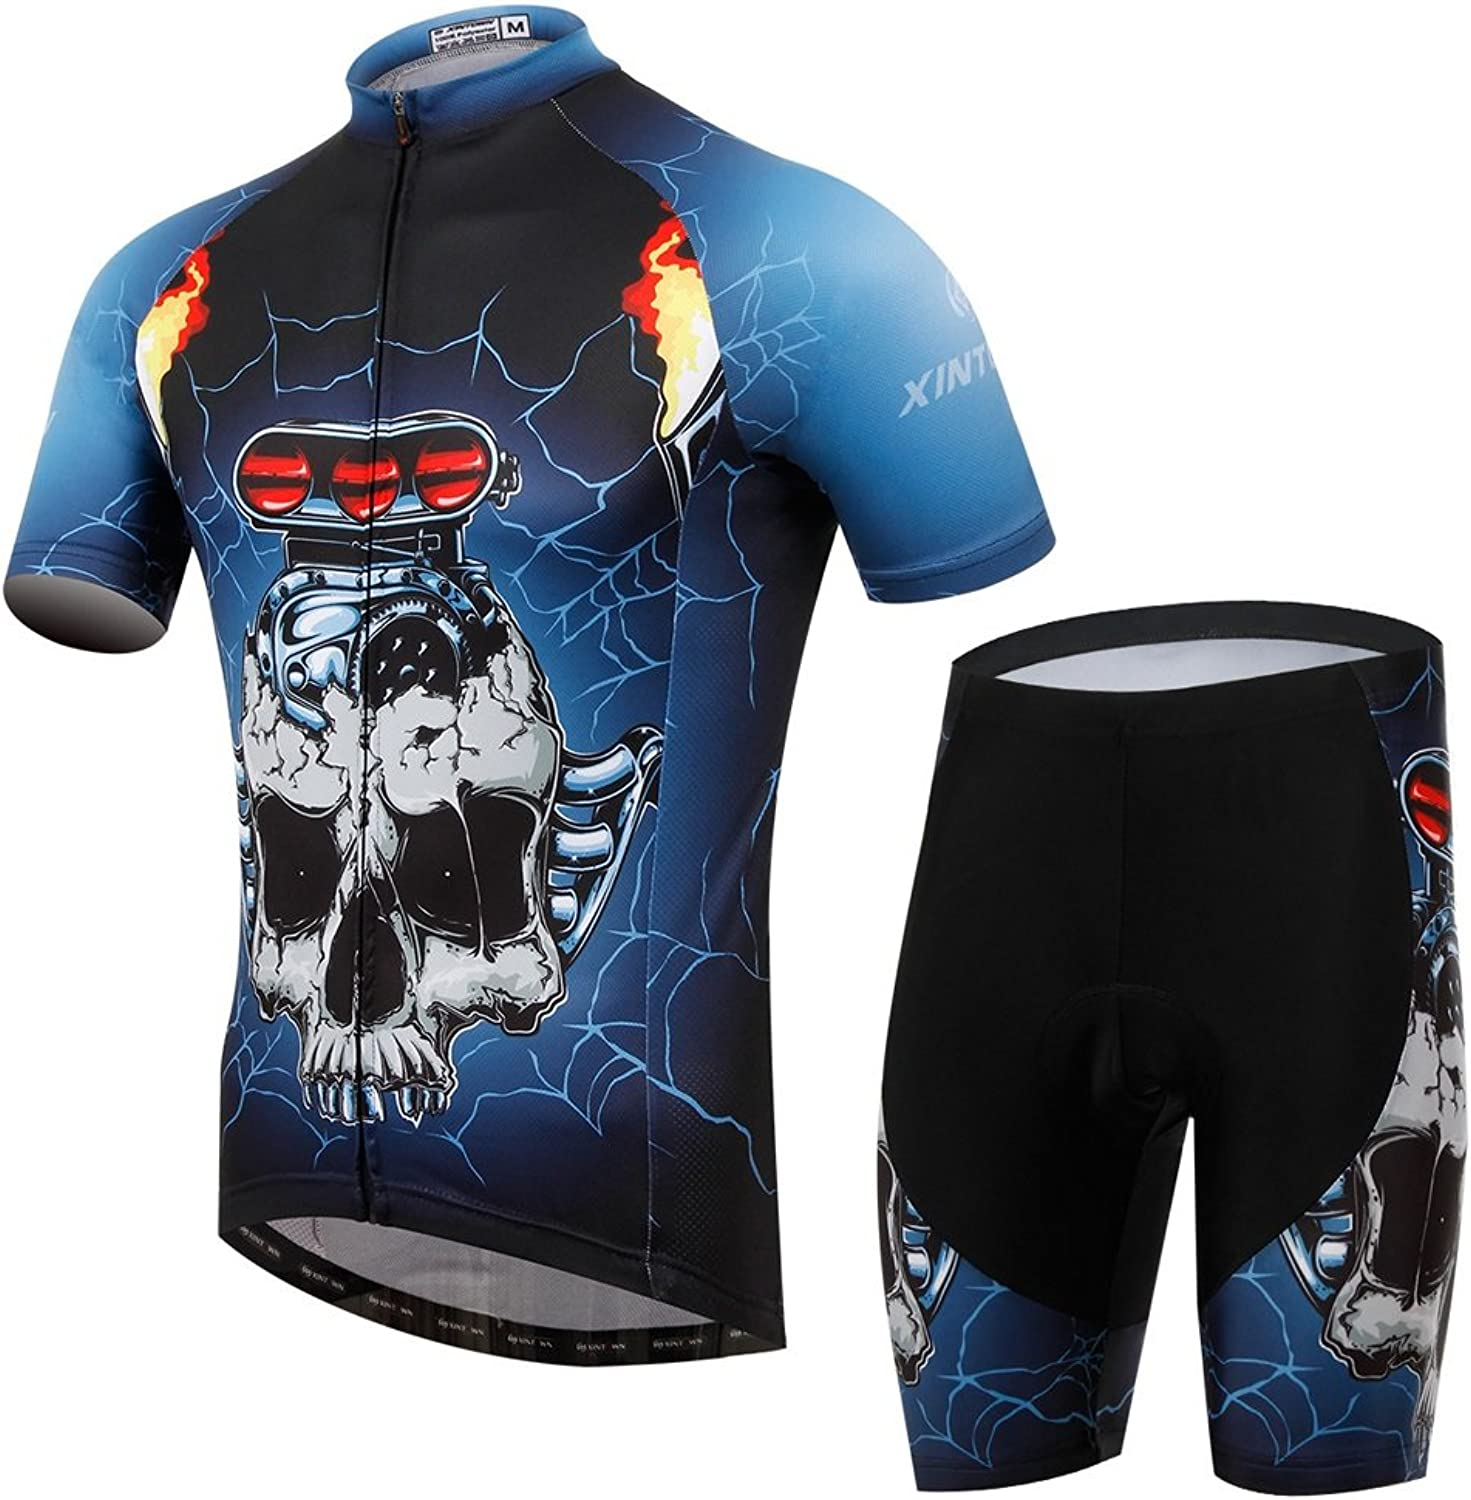 Pinjeer Breathable Summer Men's Cycling Jersey Clothing blueee Main color with Skull Pattern Printing Outdoors Bicycle Riding Dresses,Quick Dry Team Jersey Men & Boys Shorts Prime Shorts Sets for Racin